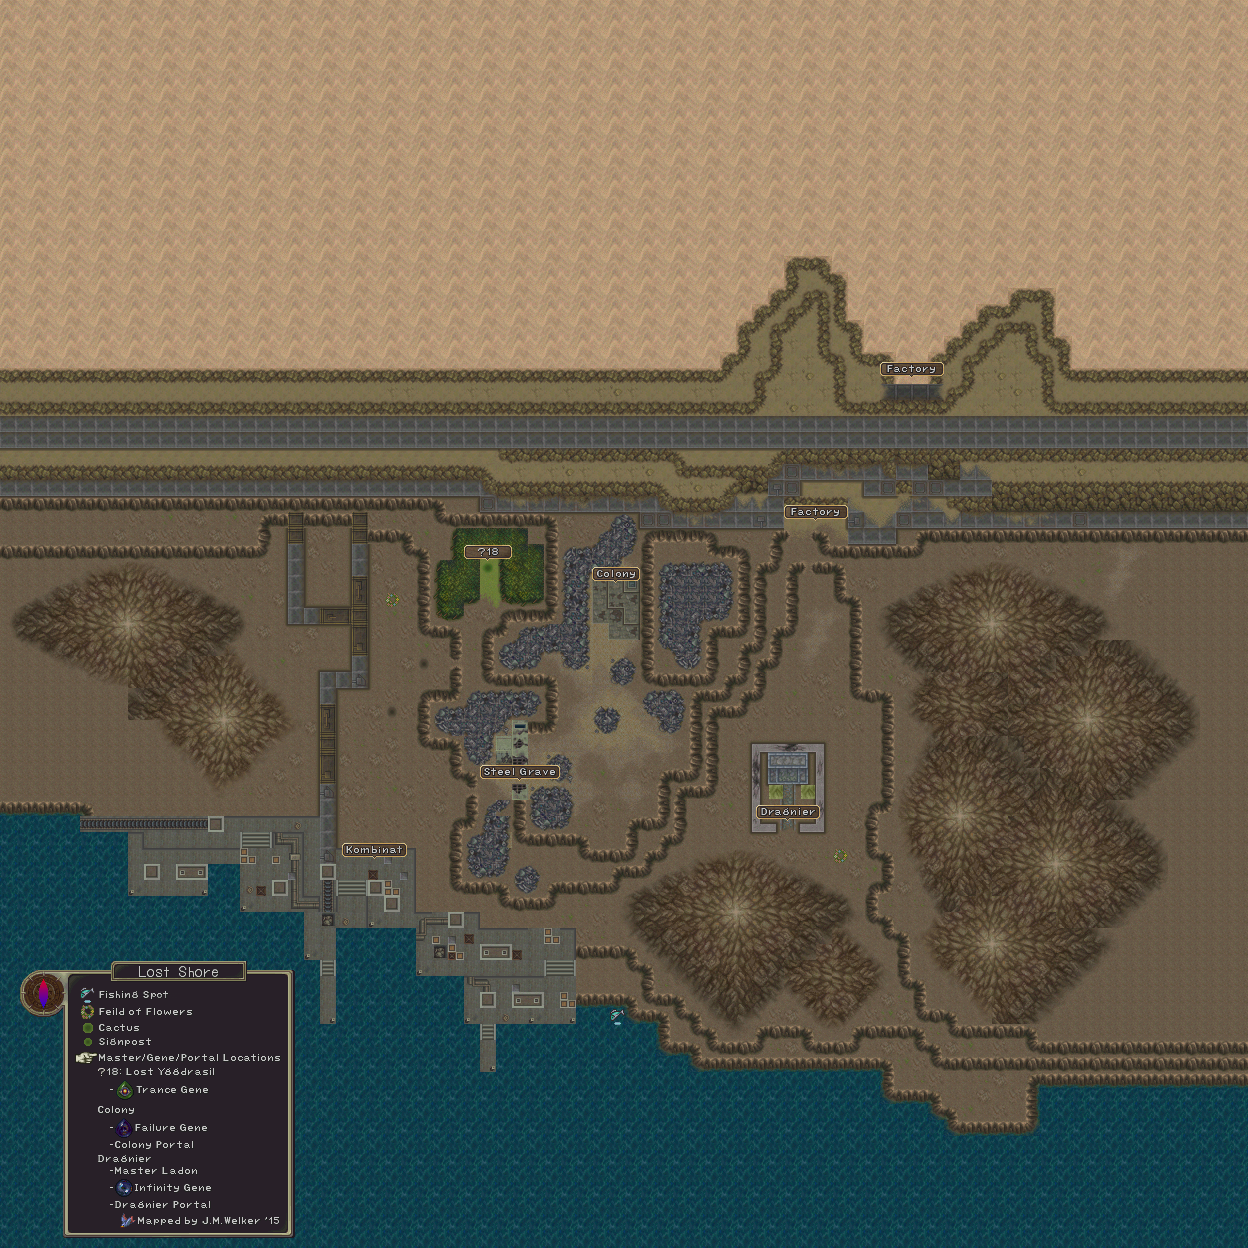 Lost S | Breath of Fire | FANDOM powered by Wikia Breath Of Fire Map on resident evil zero map, tales of symphonia map, god of war map, skies of arcadia map, devil may cry map, legend of dragoon map, pool of radiance map, illusion of gaia map, shining force map, chrono trigger map, chrono cross map, legacy of kain map,